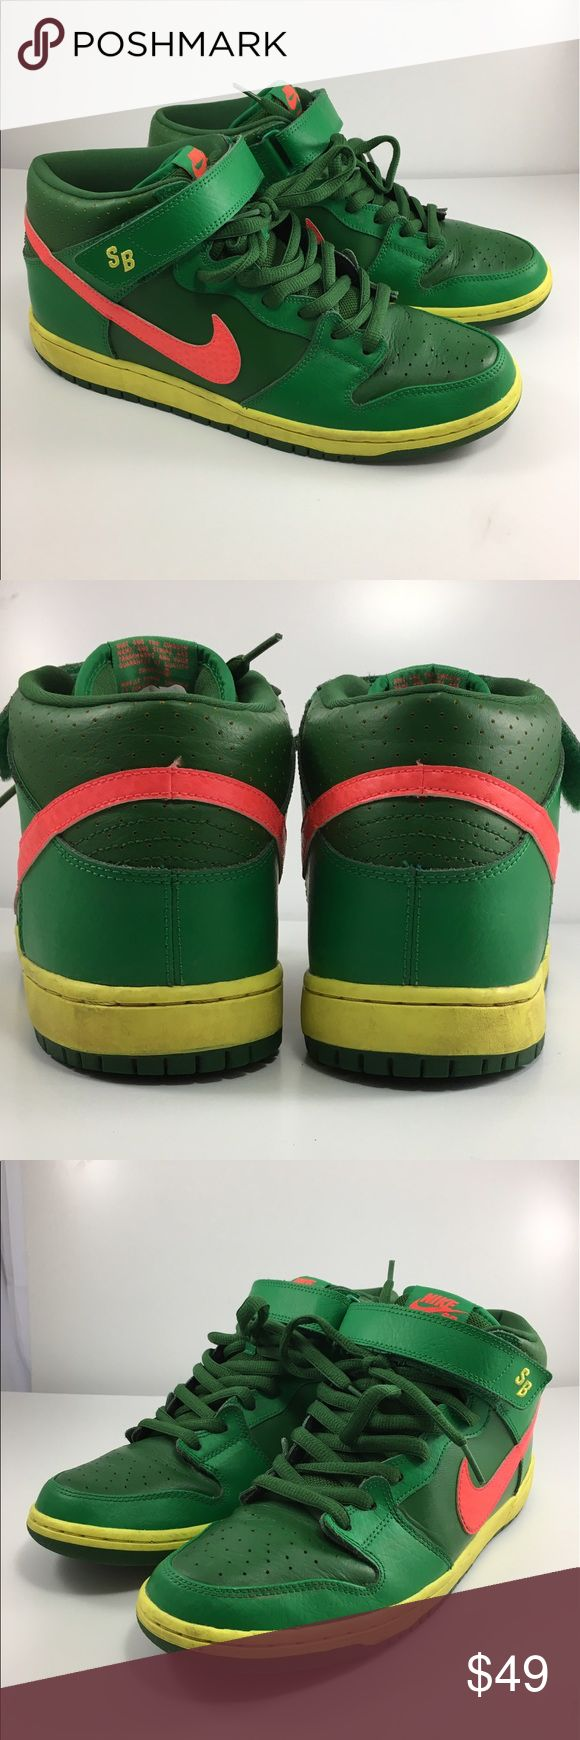 💙Men's Nike mid top basketball shoe 10.5 💙Men's Nike Mid Top Basketball 🏀 shoe in size 10.5. Shoes are green based with pink swoosh and yellow stripe around bottom. Tie ups and Velcro strap. Shoes are in good used condition and made in Vietnam. Nike Shoes Sneakers